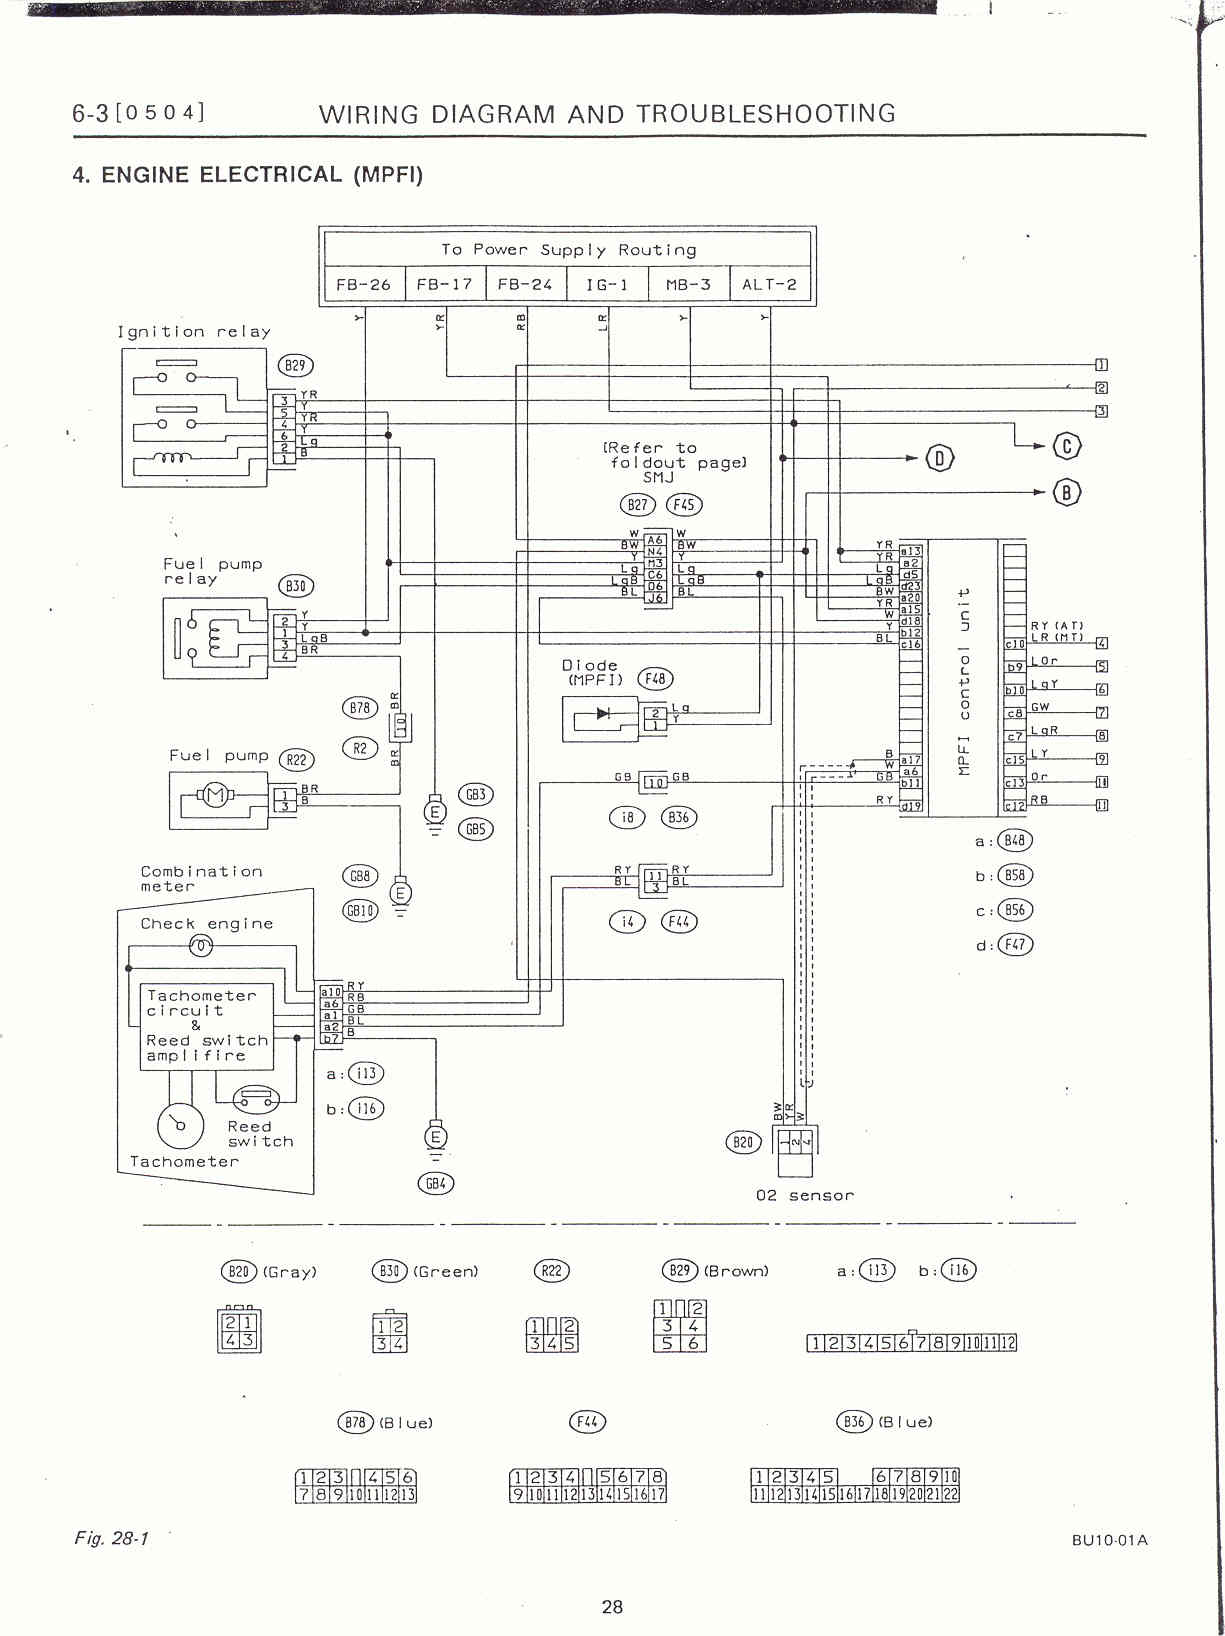 Surrealmirage Subaru Legacy Swap Electrical Info Notes Wiring Diagram For Lockout Relay Engine Page 1